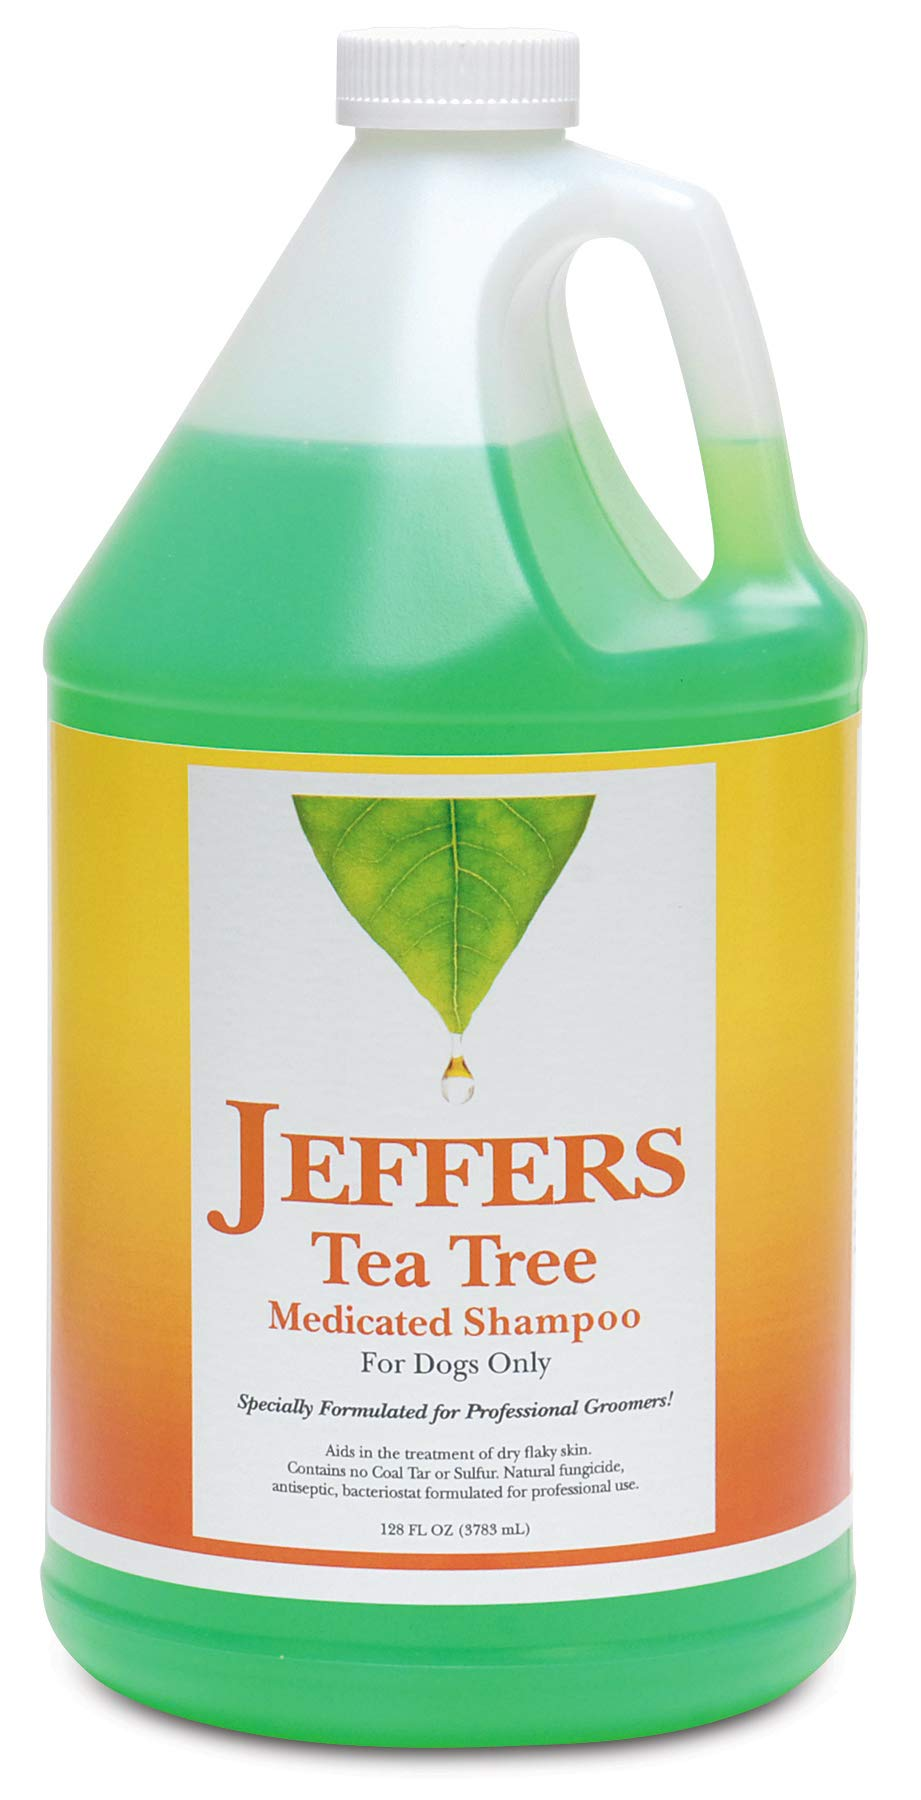 Jeffers Tea Tree Medicated Shampoo, Gallon by Jeffers